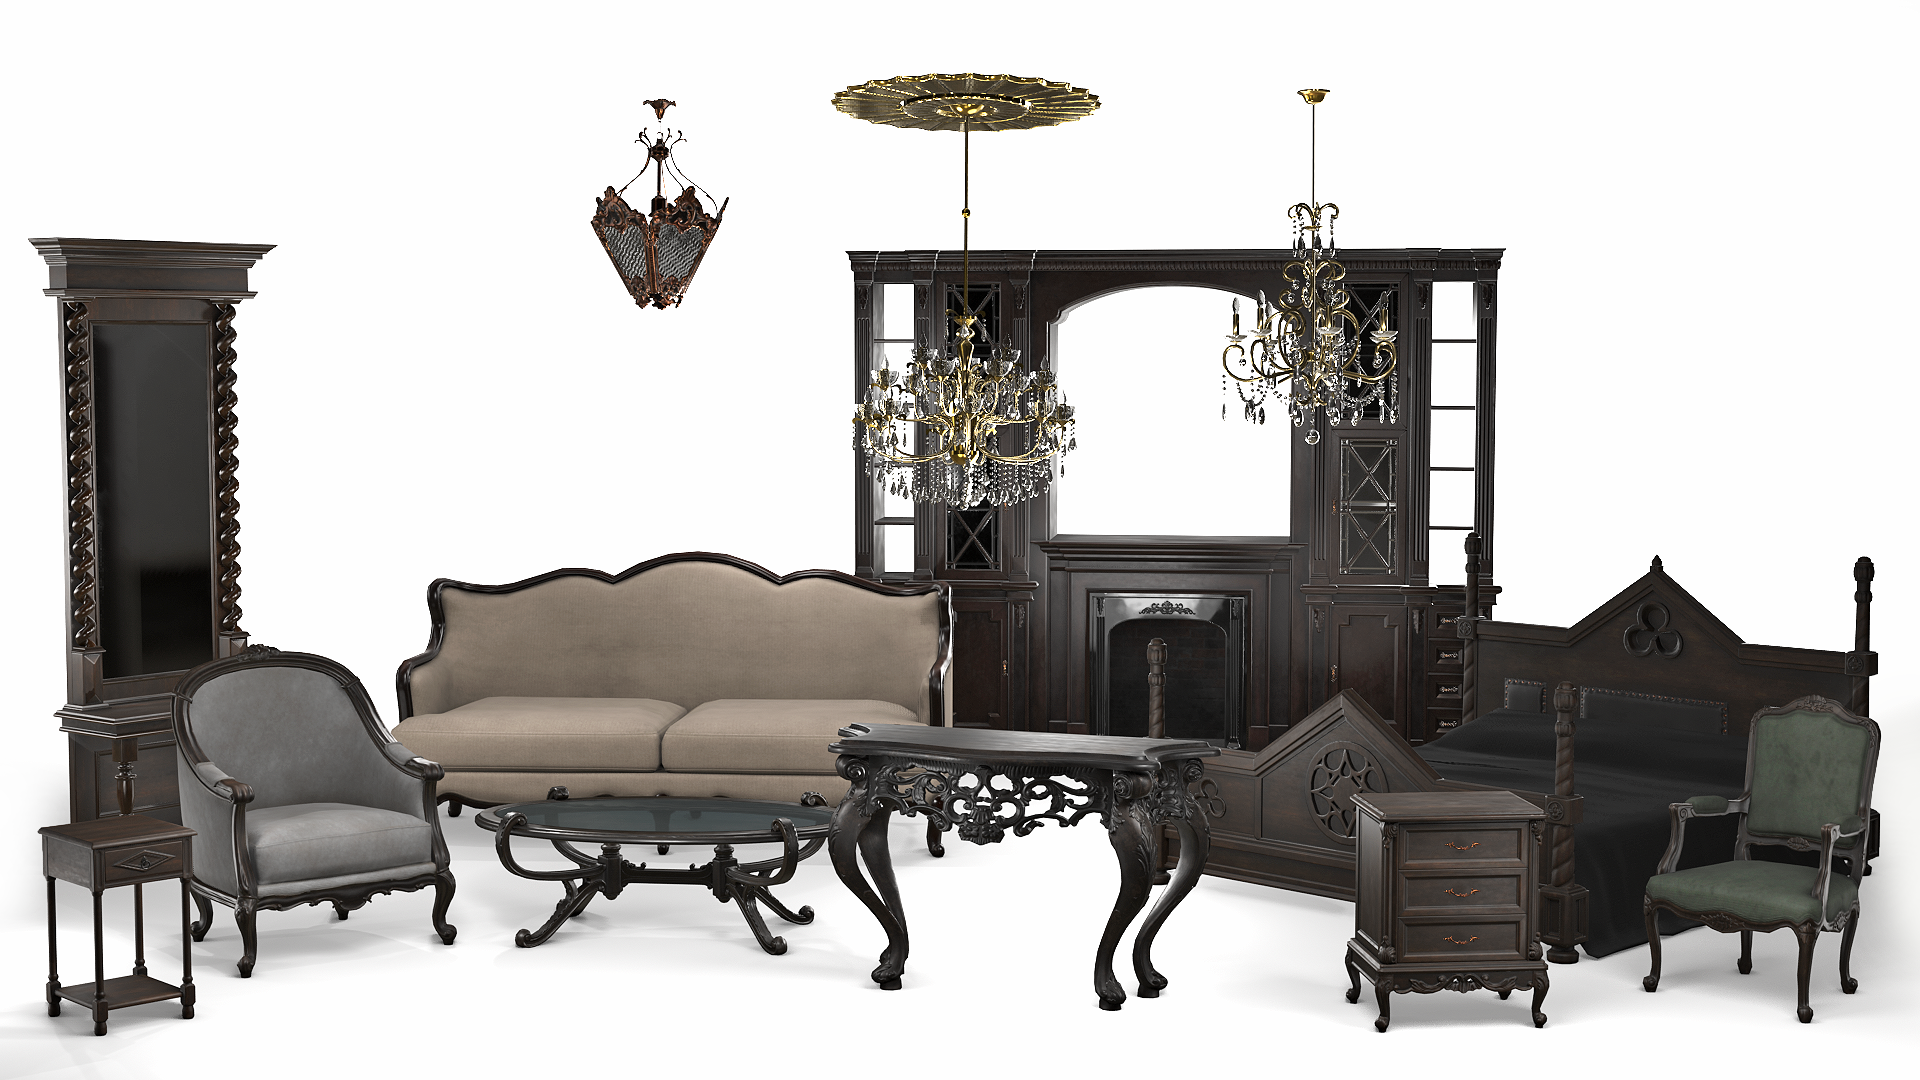 Classic Furniture Collection Hq By K S Inc In Props Ue4 Marketplace